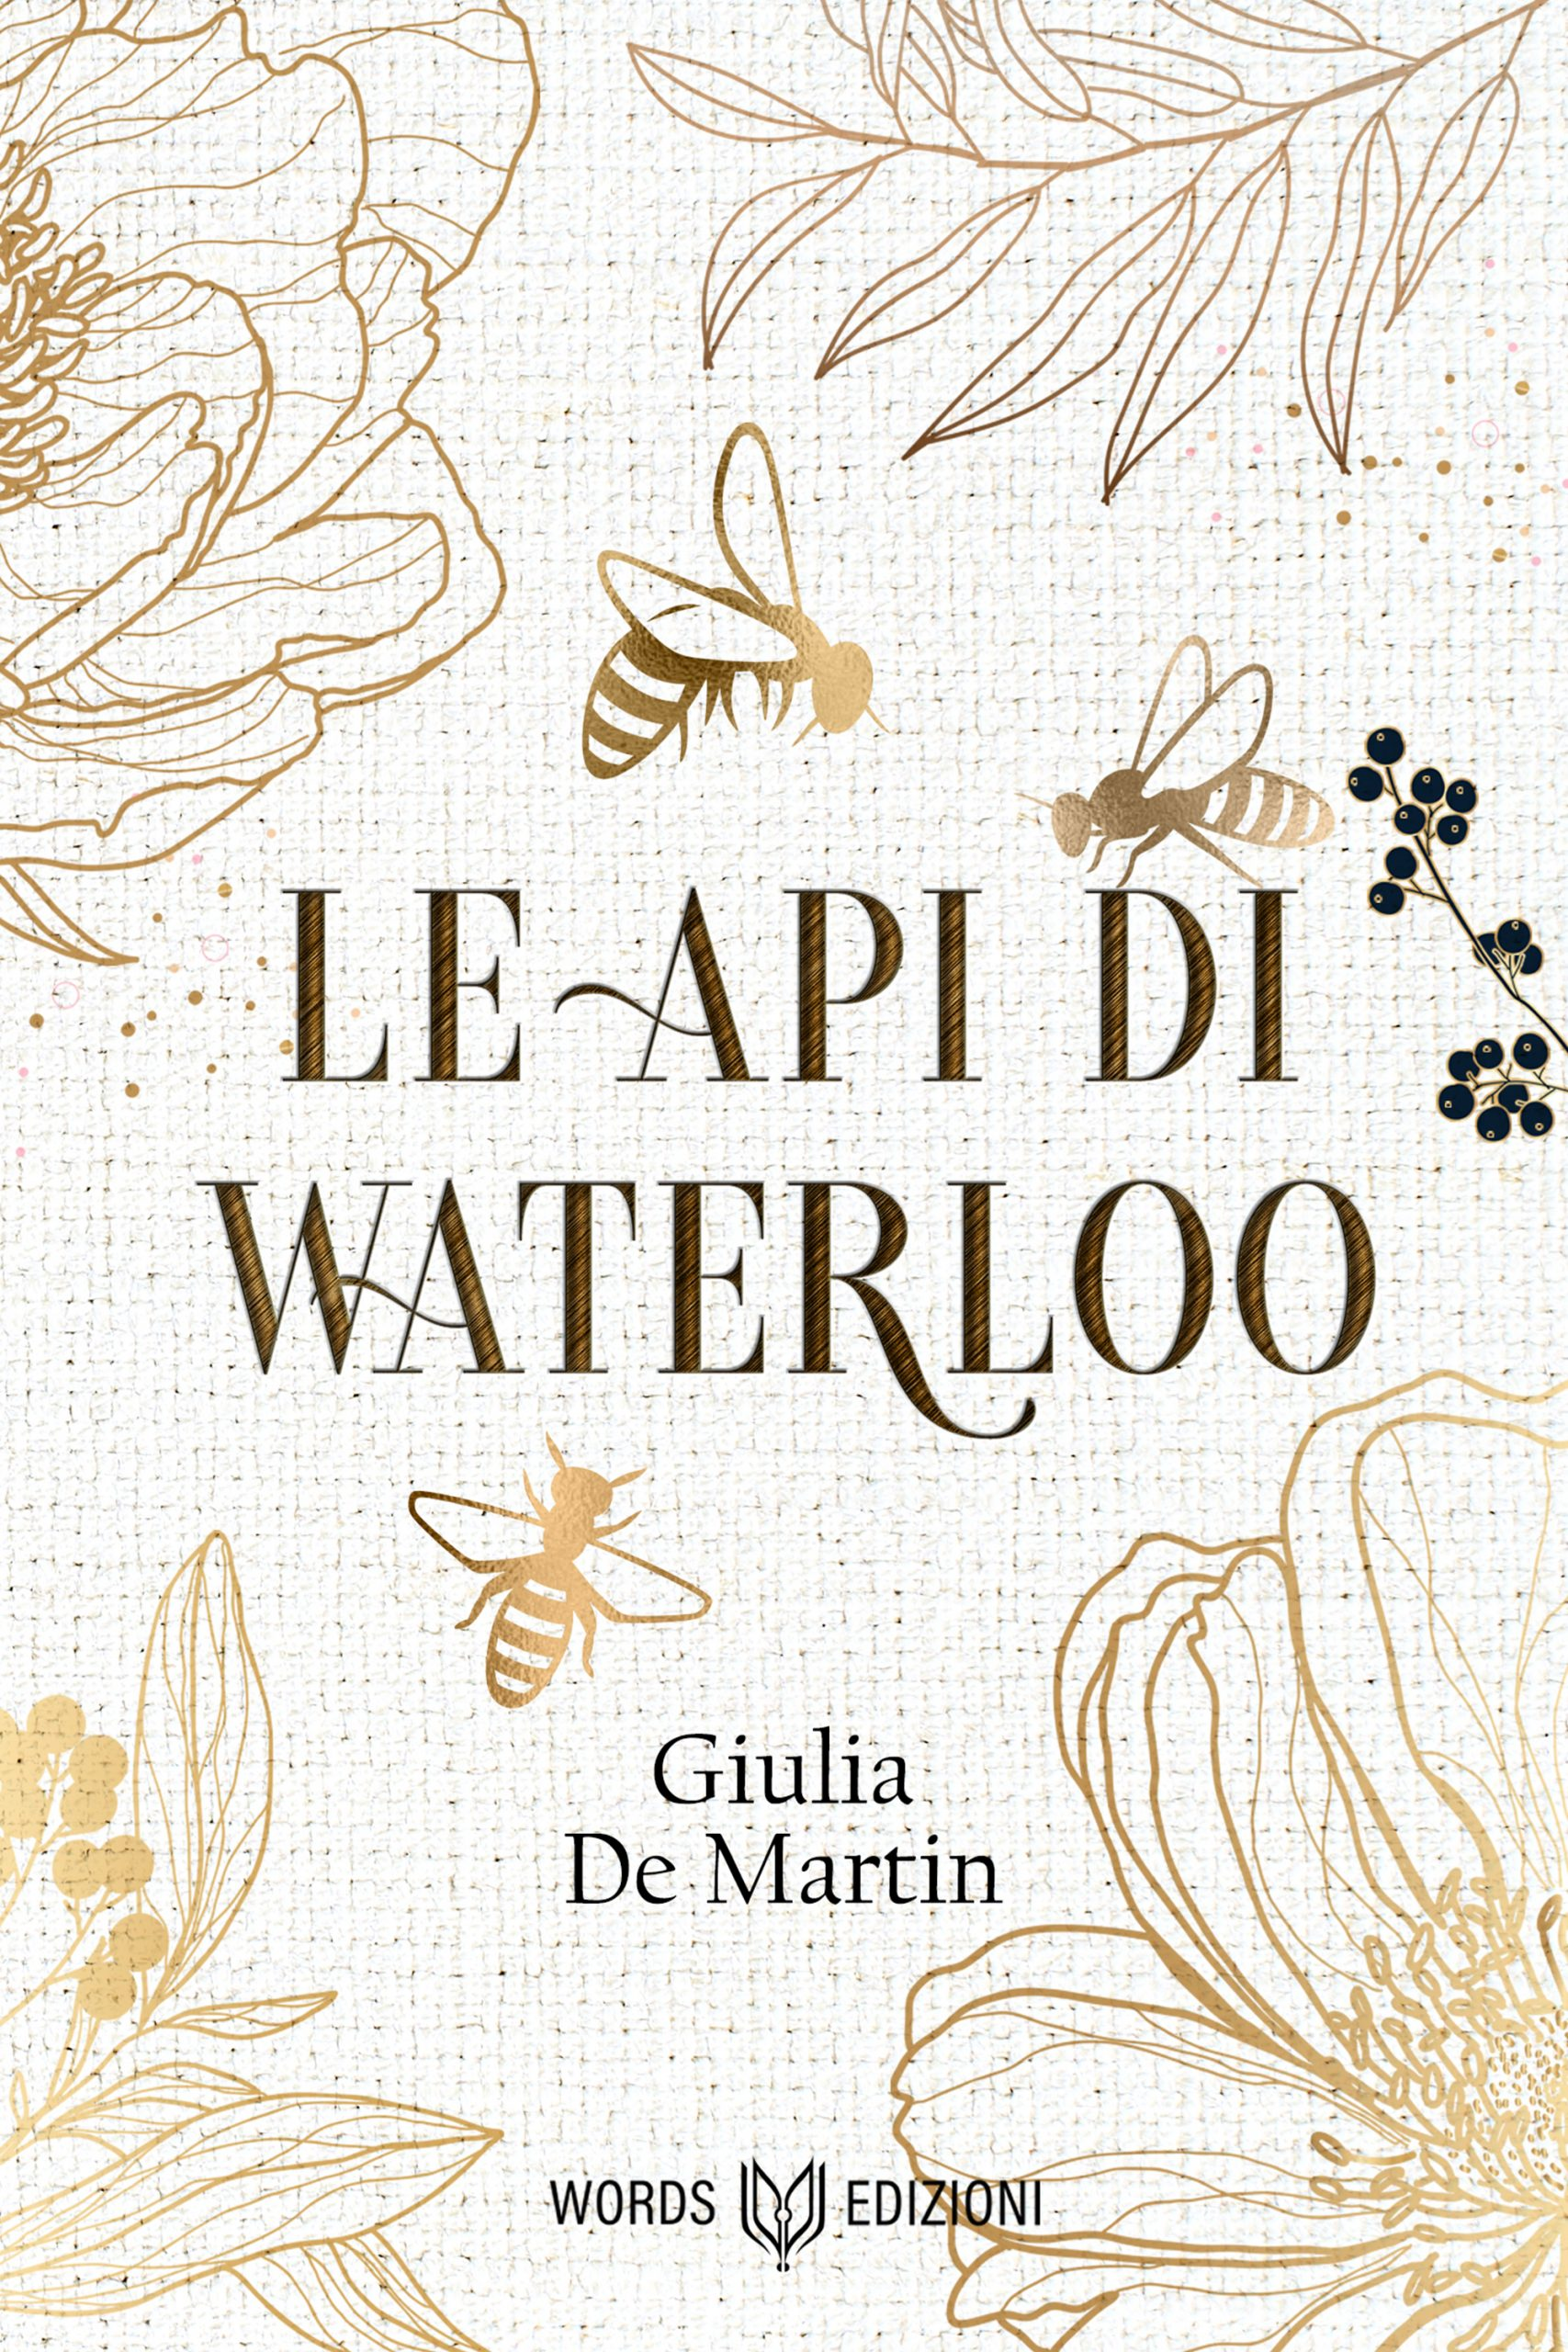 words edizioni api di waterloo giulia de martin